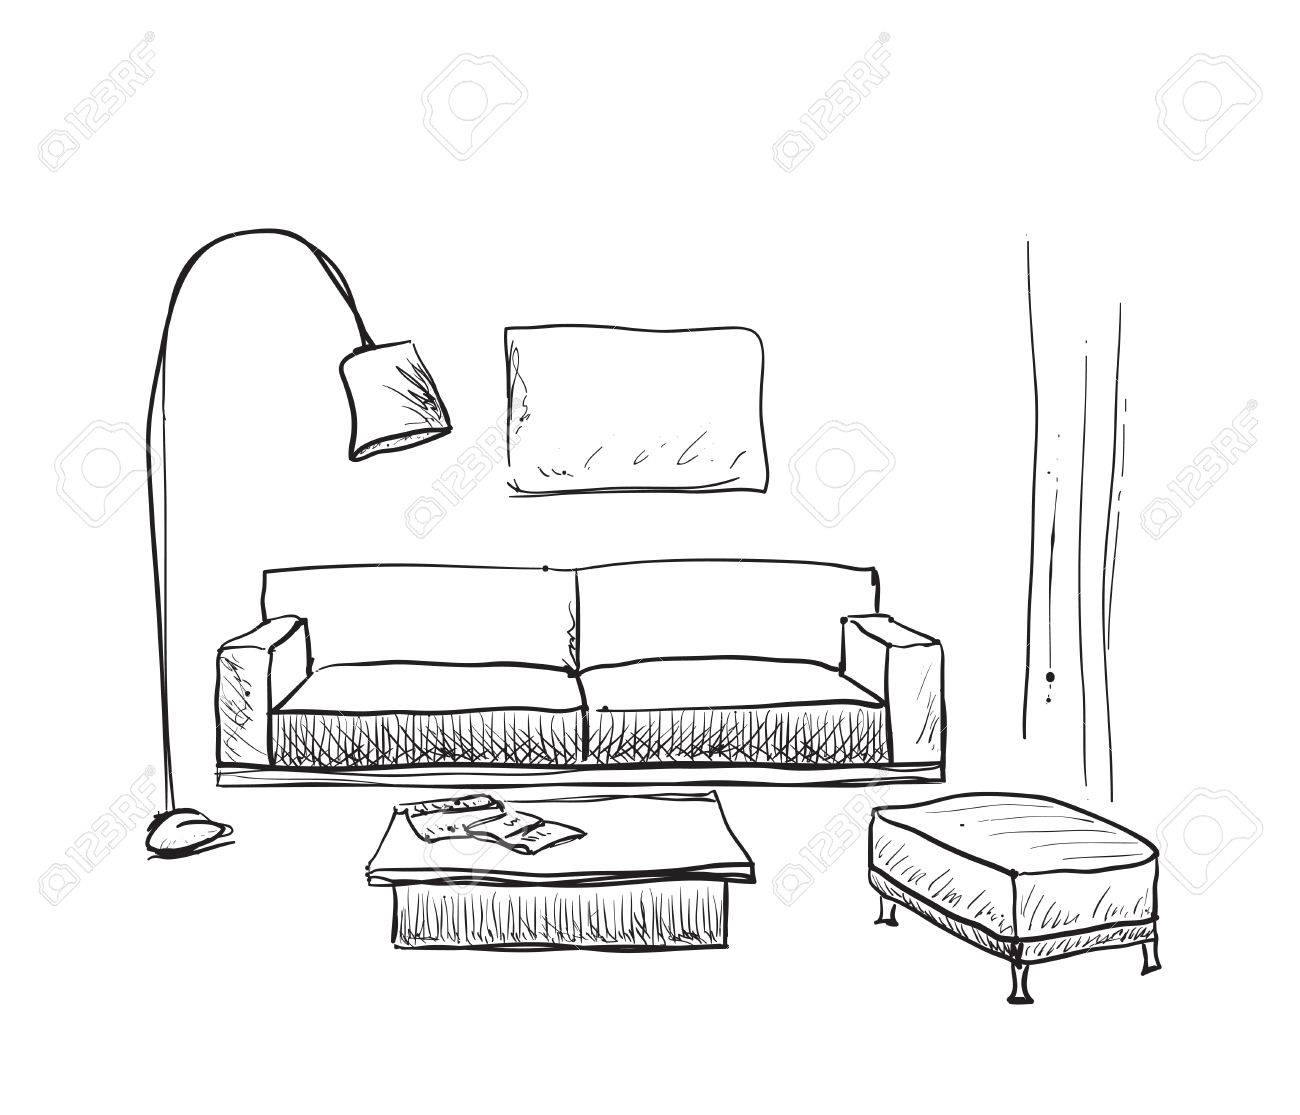 Attirant Hand Drawn Room Interior Sketch. Furniture Sketch Stock Vector   61972859